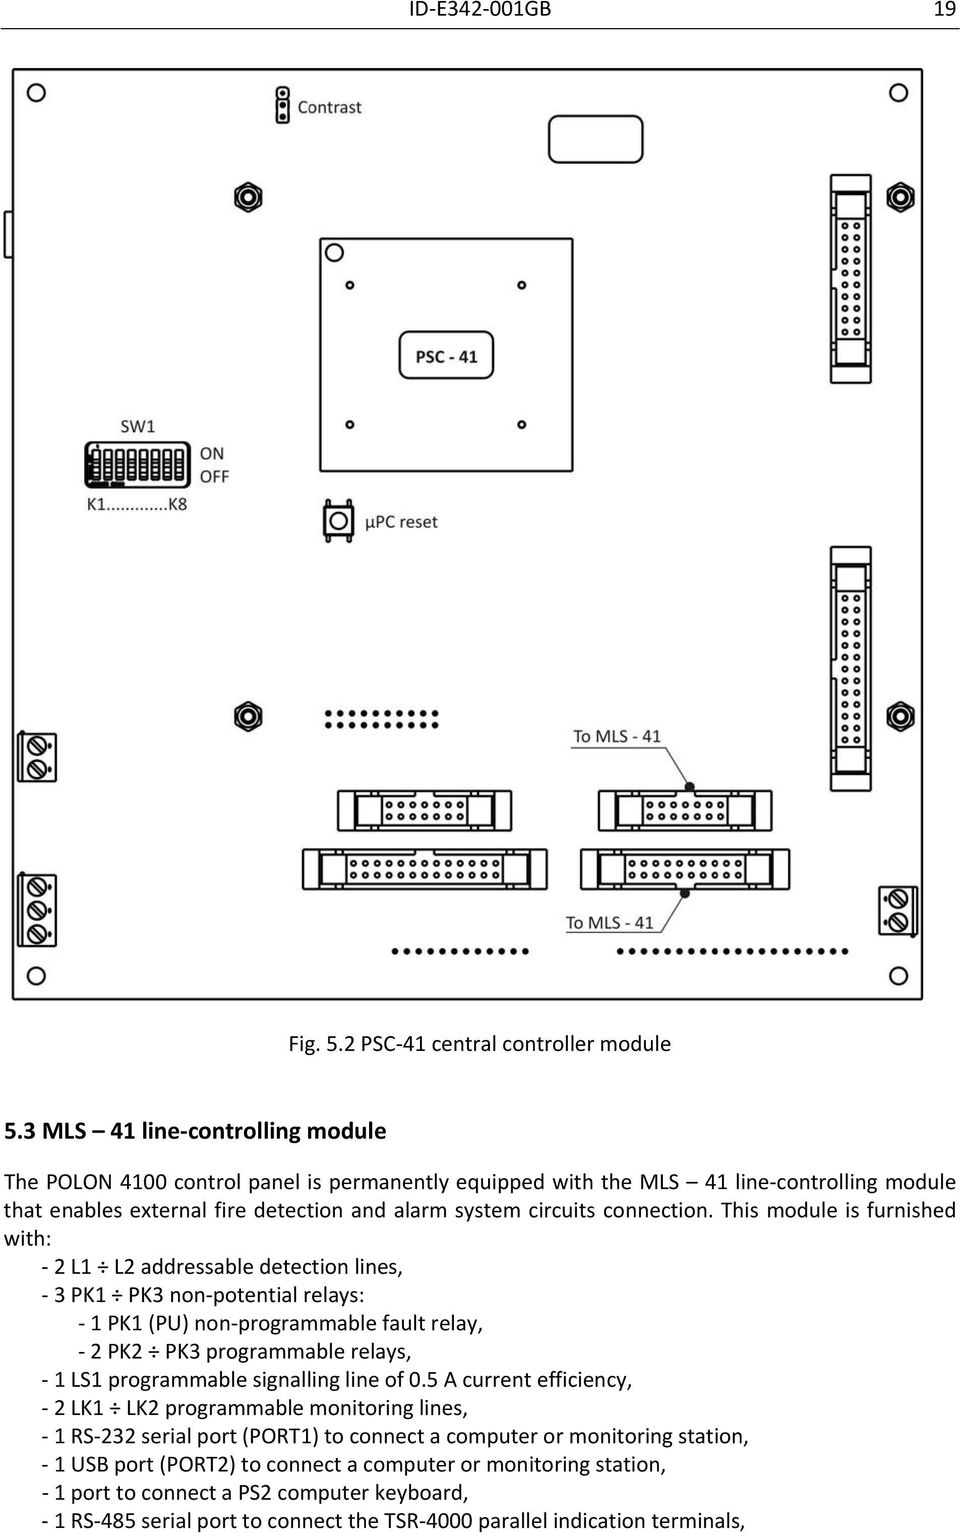 Polon 4100 Fire Detection And Alarm Addressable Control Panel Pdf Pk3 Wiring Diagram Connection